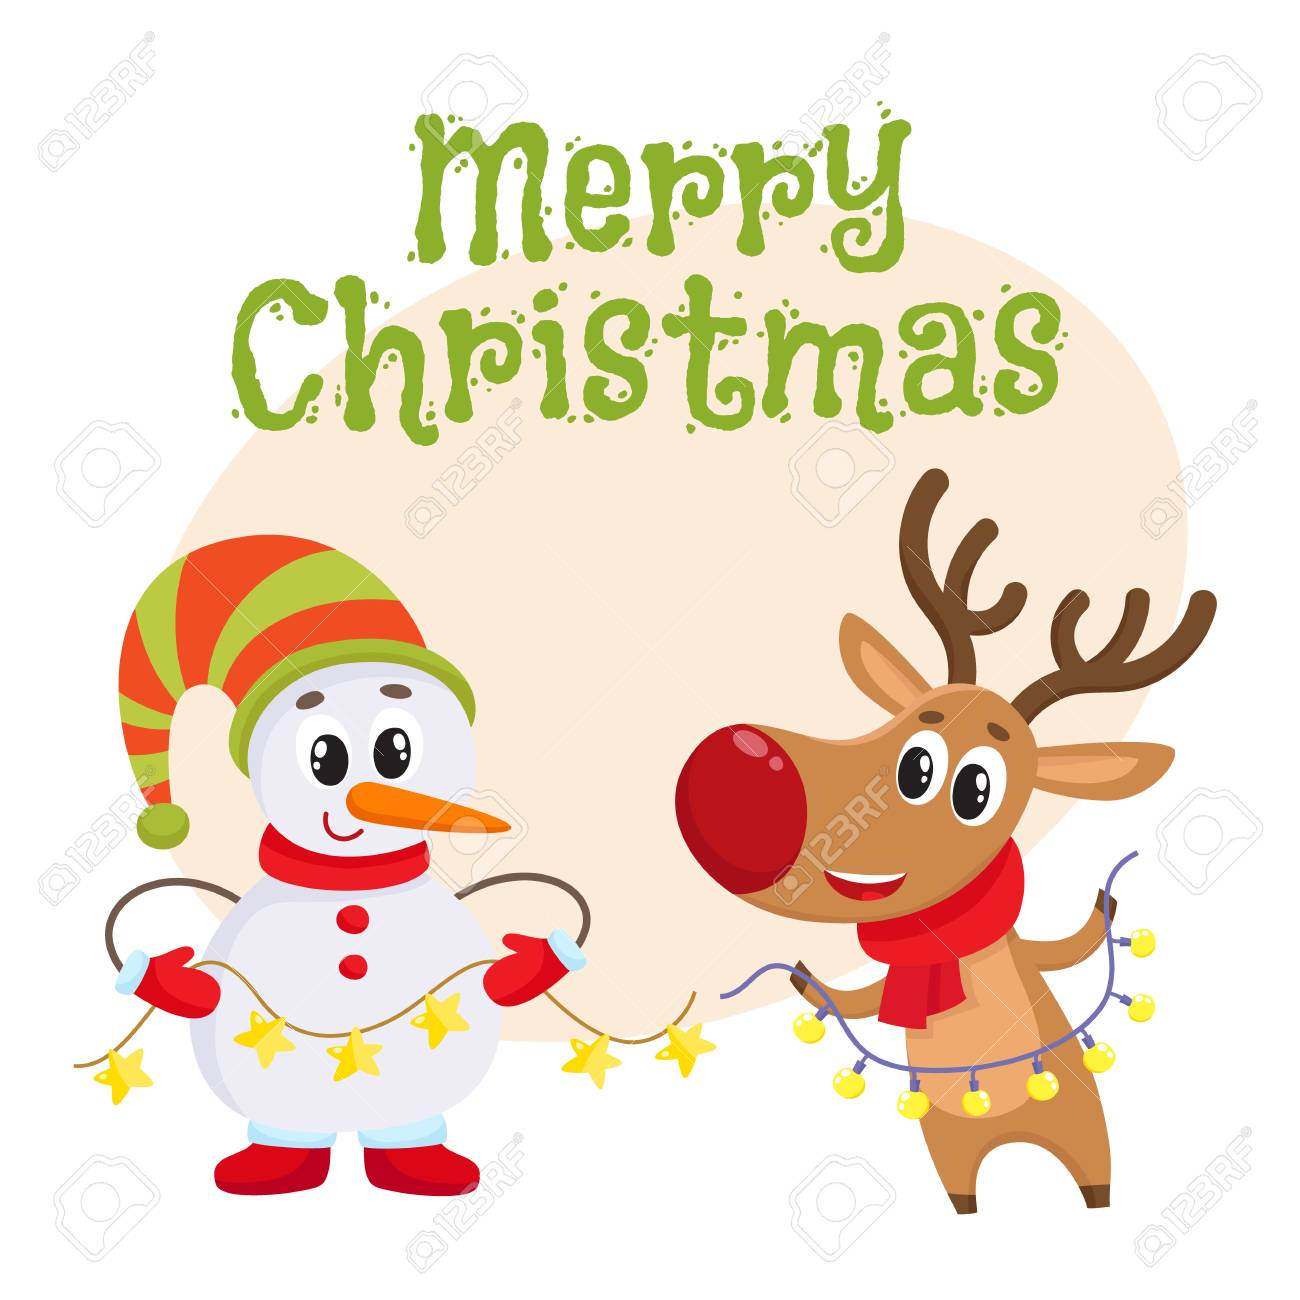 Merry Christmas Greeting Card Template With Funny Reindeer And - Christmas greeting card template